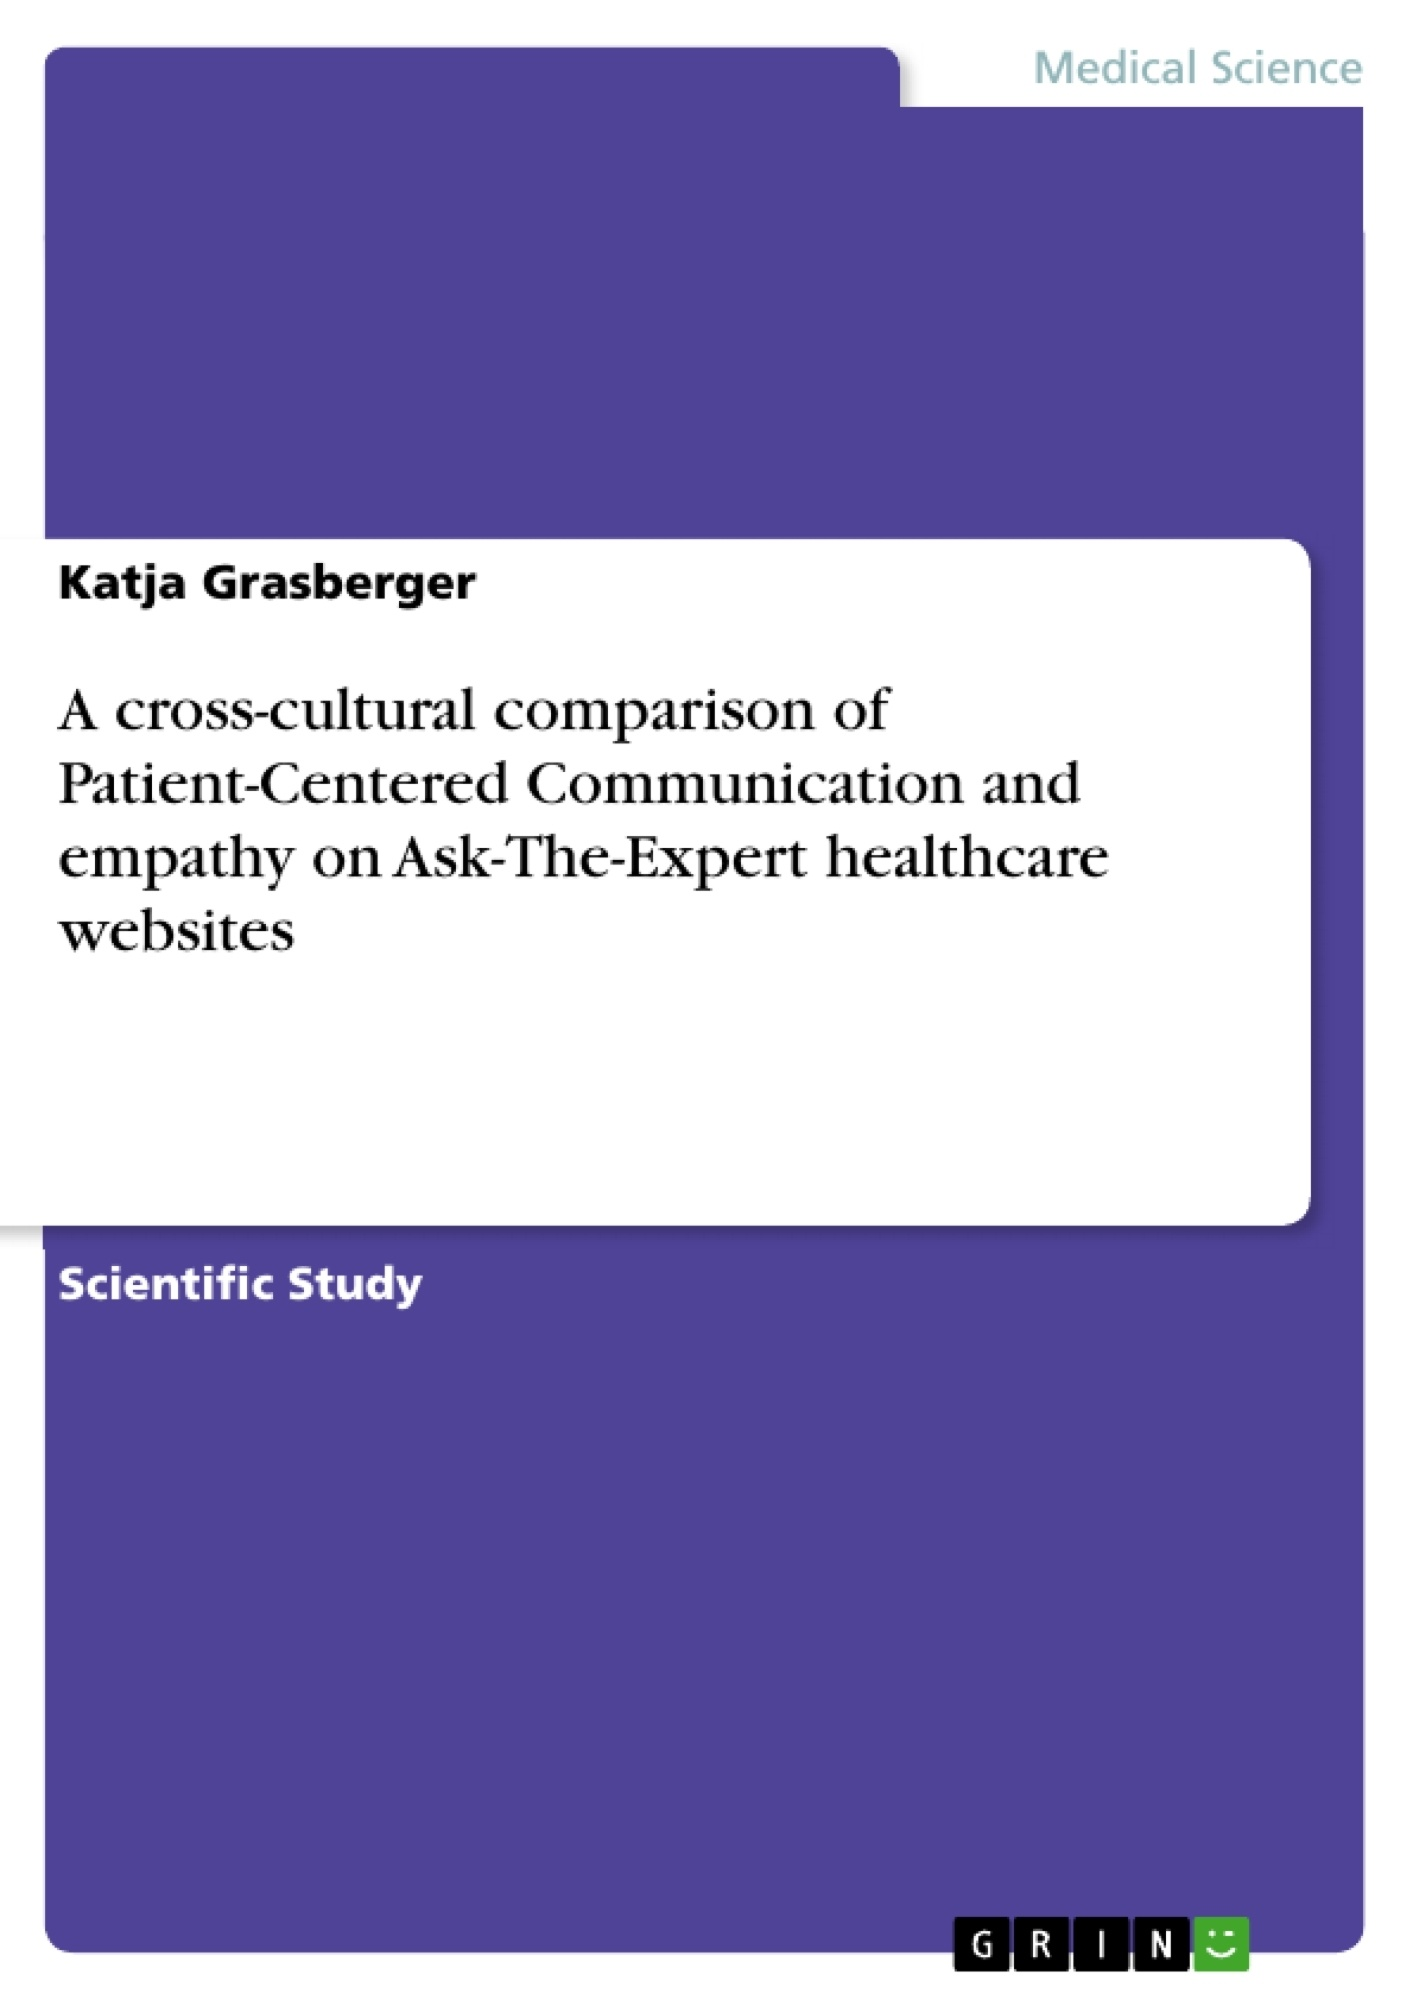 Title: A cross-cultural comparison of Patient-Centered Communication and empathy on Ask-The-Expert healthcare websites